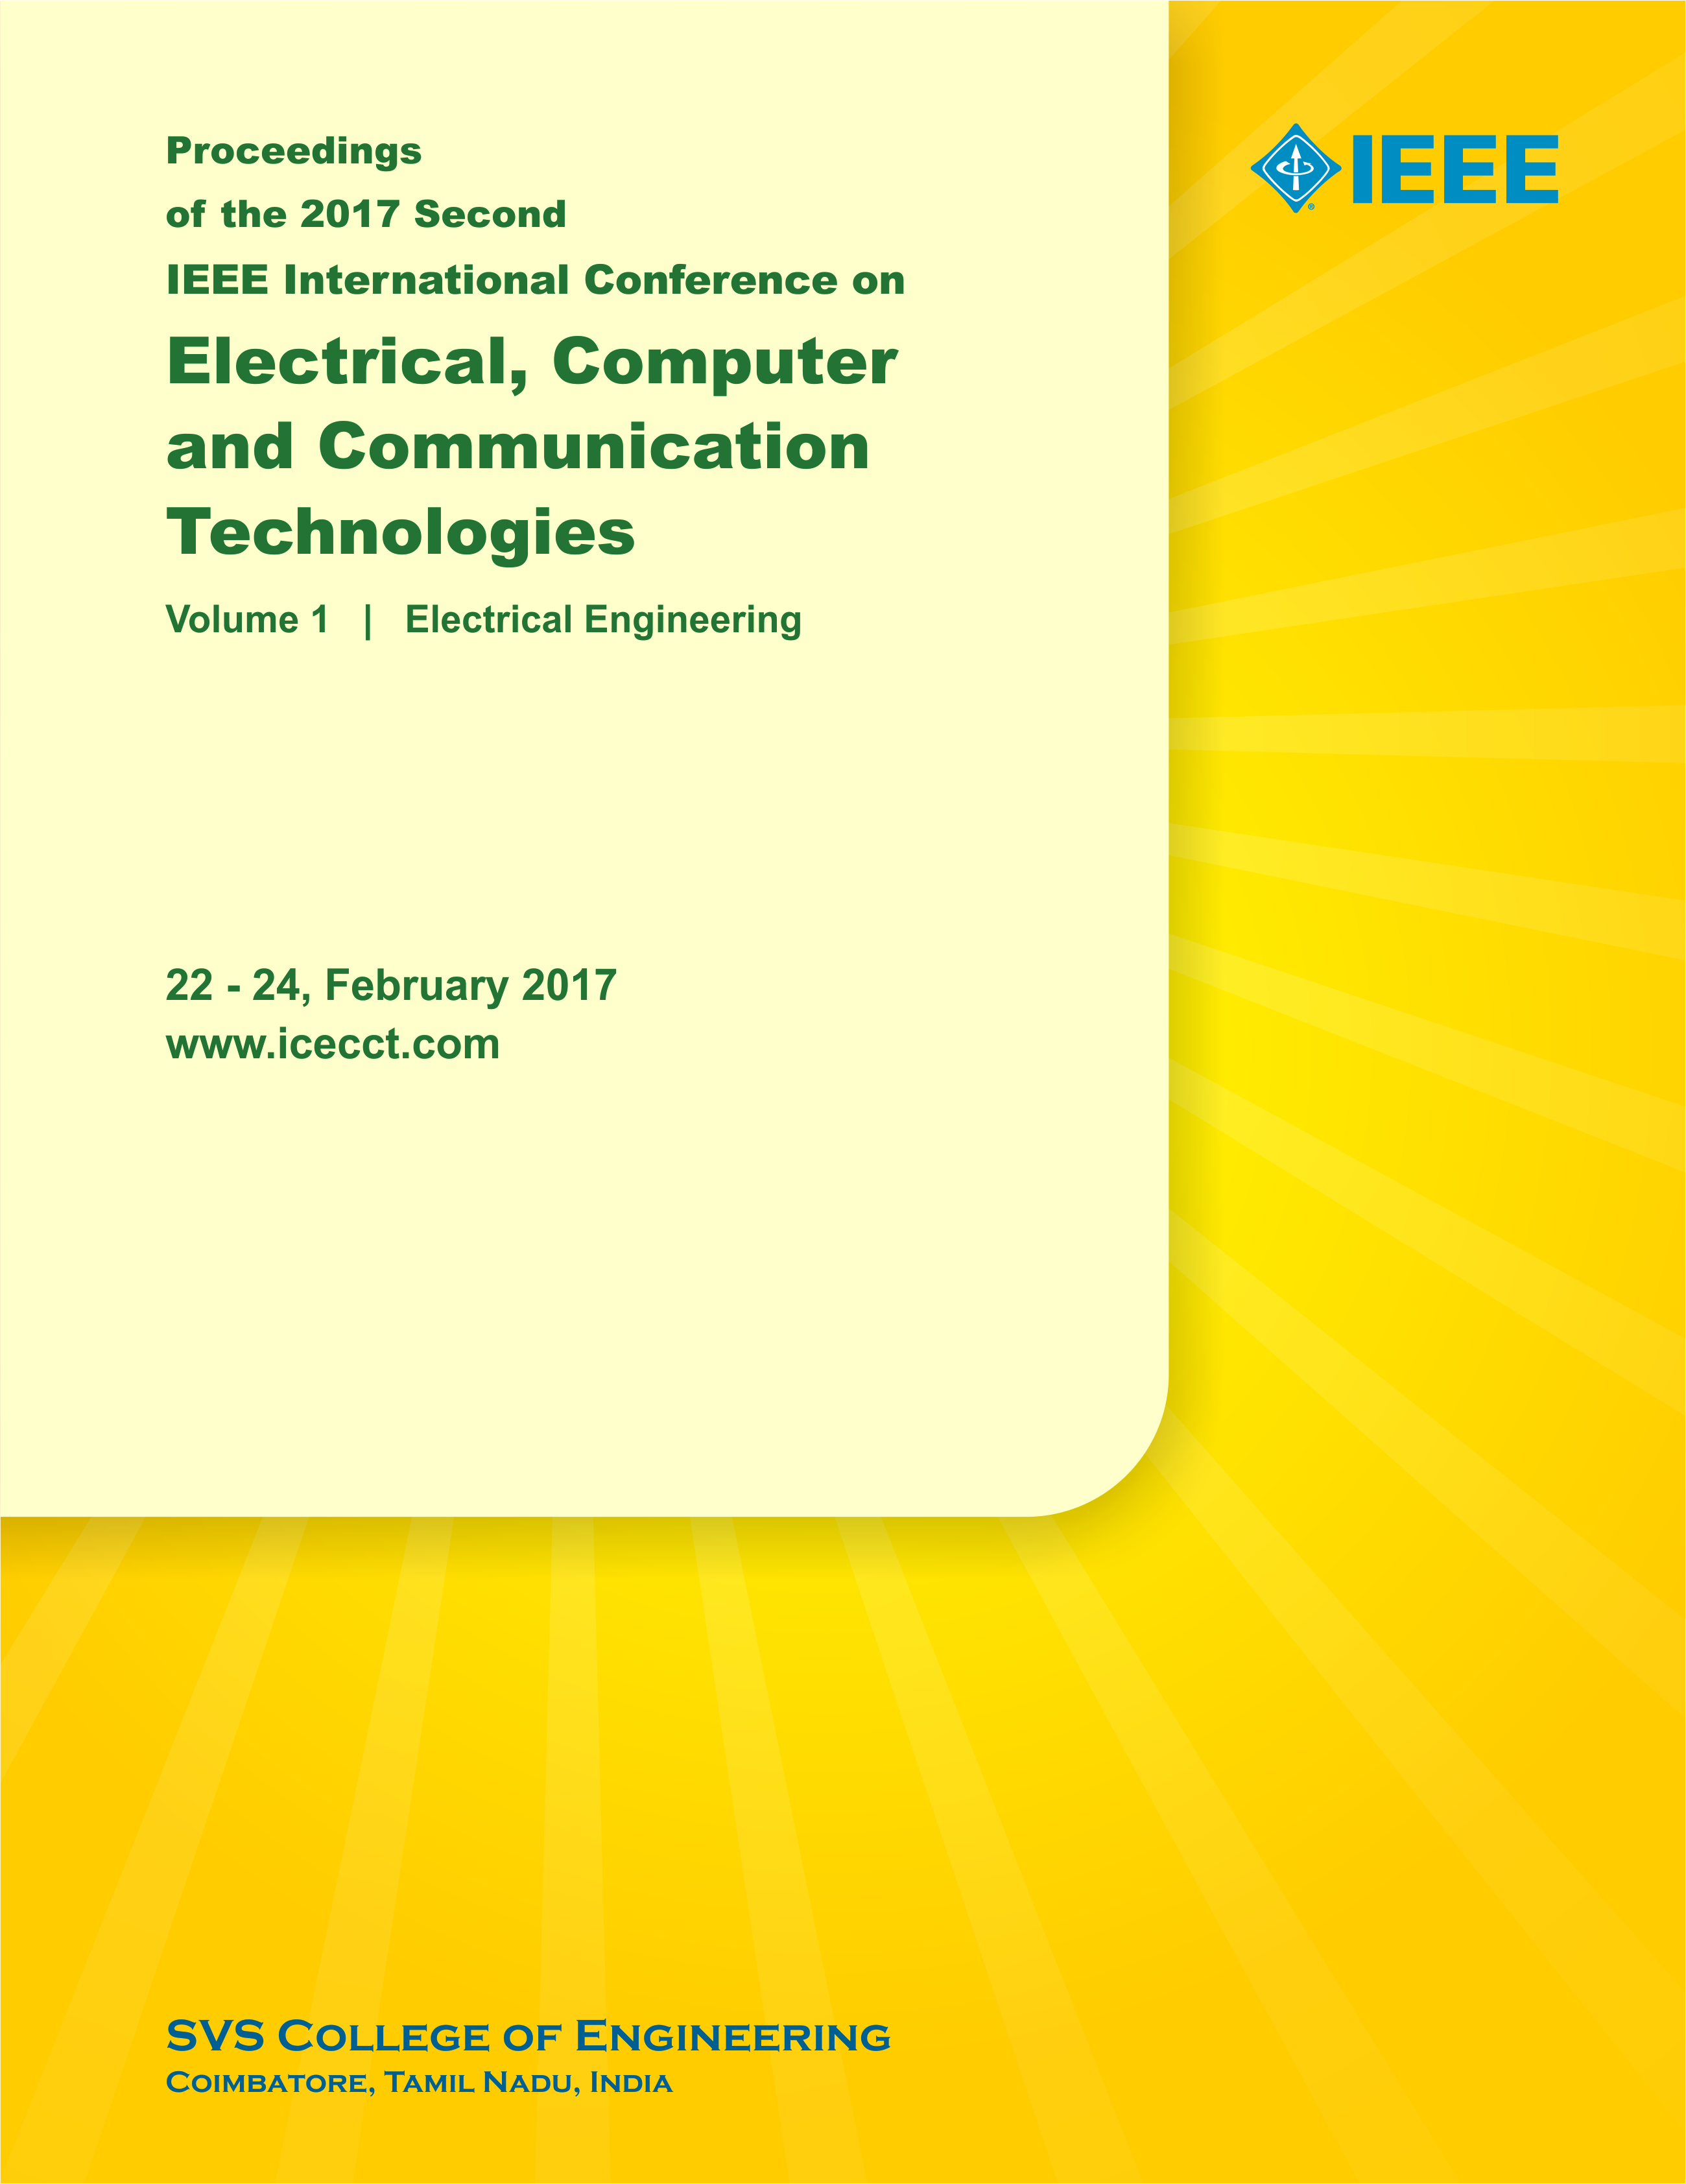 Ieee Icecct 2019 Coimbatore India Electricity And Electronics Engineering Technology Electronic Symbols The 2017 Second International Conference On Electrical Computer Communication Technologies Held At Tamil Nadu